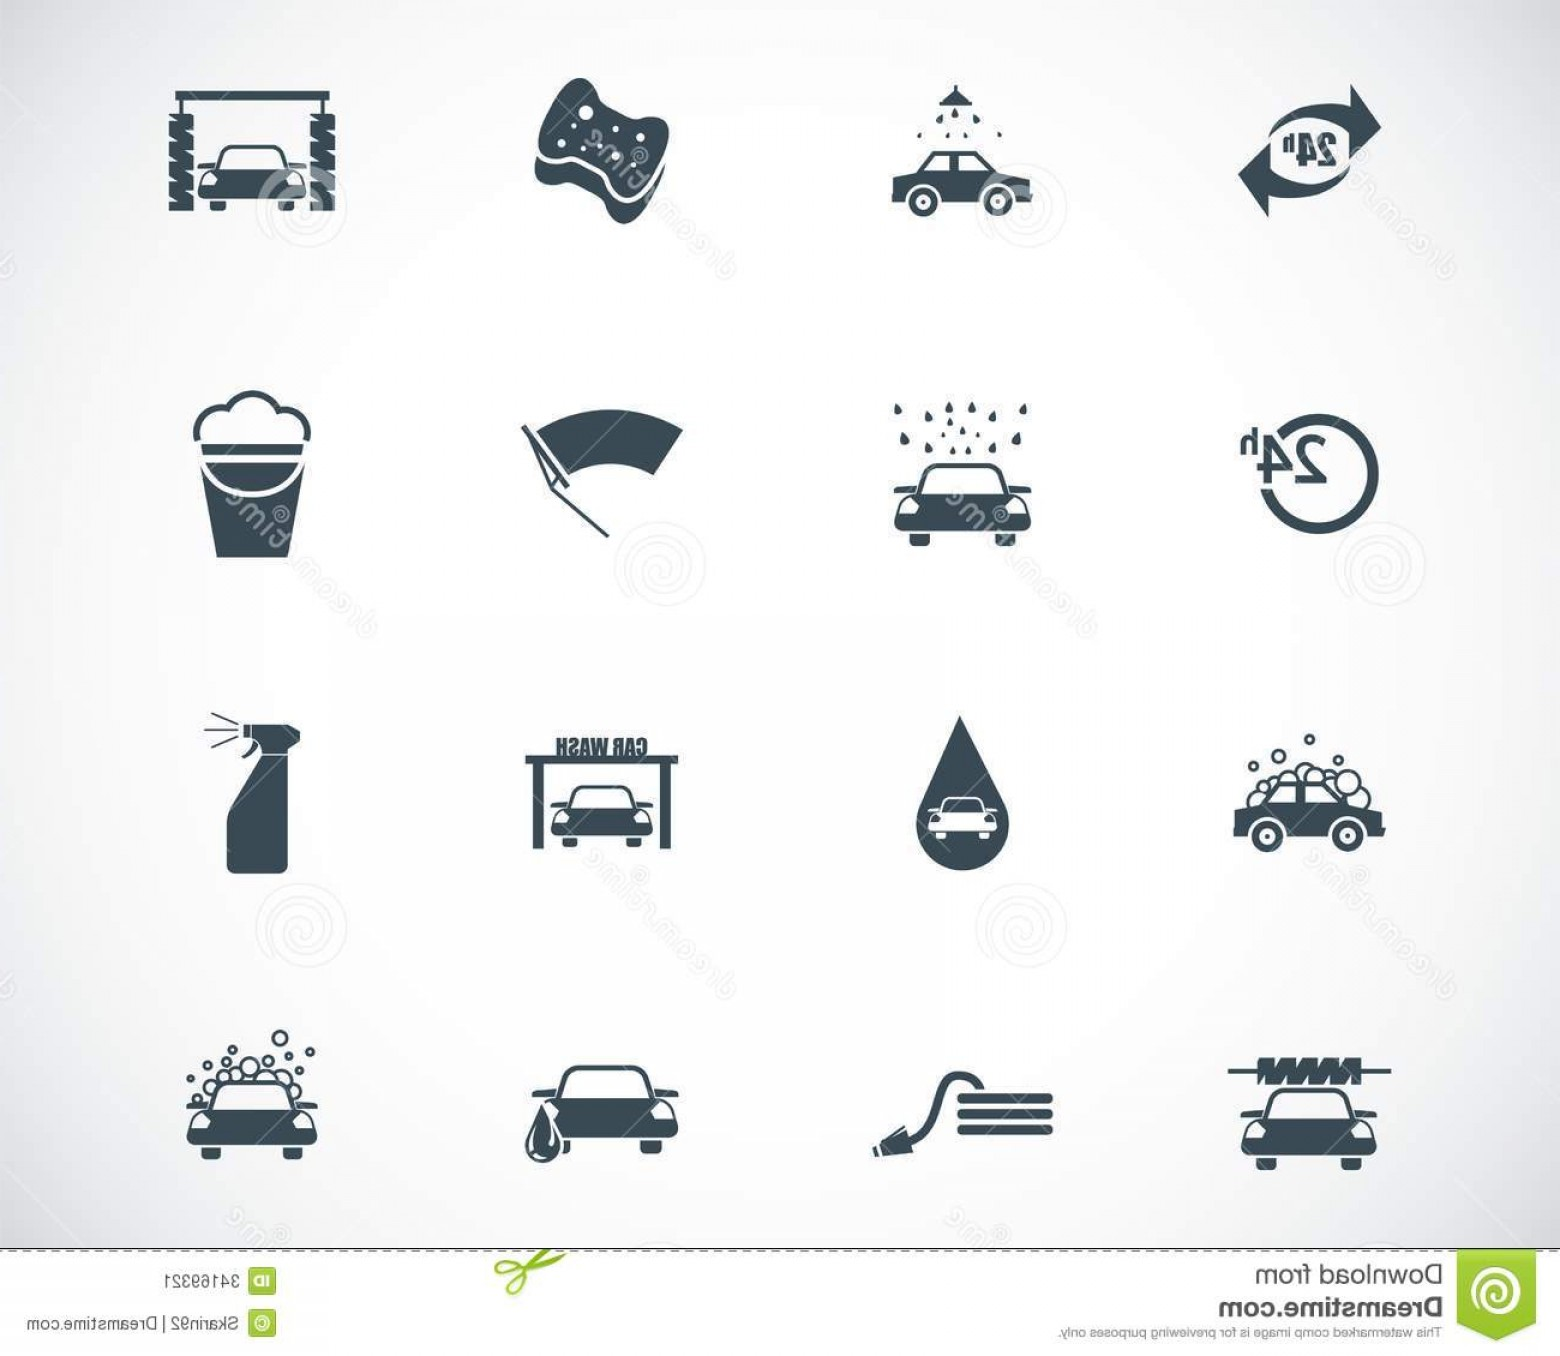 Car Wash Vector Graphics: Stock Image Vector Black Car Wash Icons Set Image